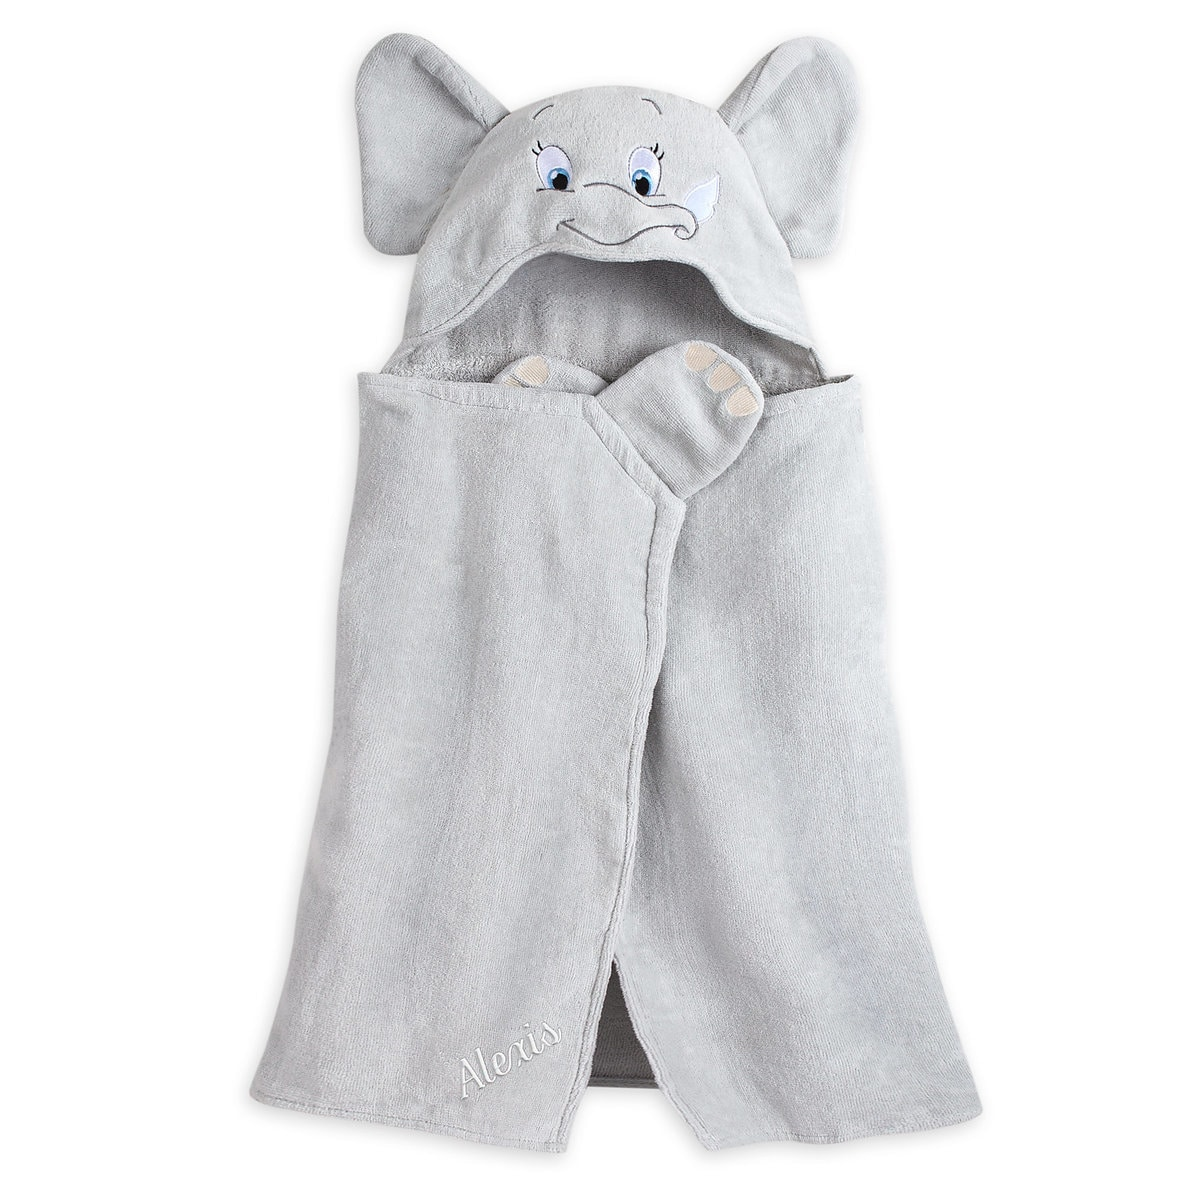 Dumbo Hooded Towel For Baby Personalizable Shopdisney